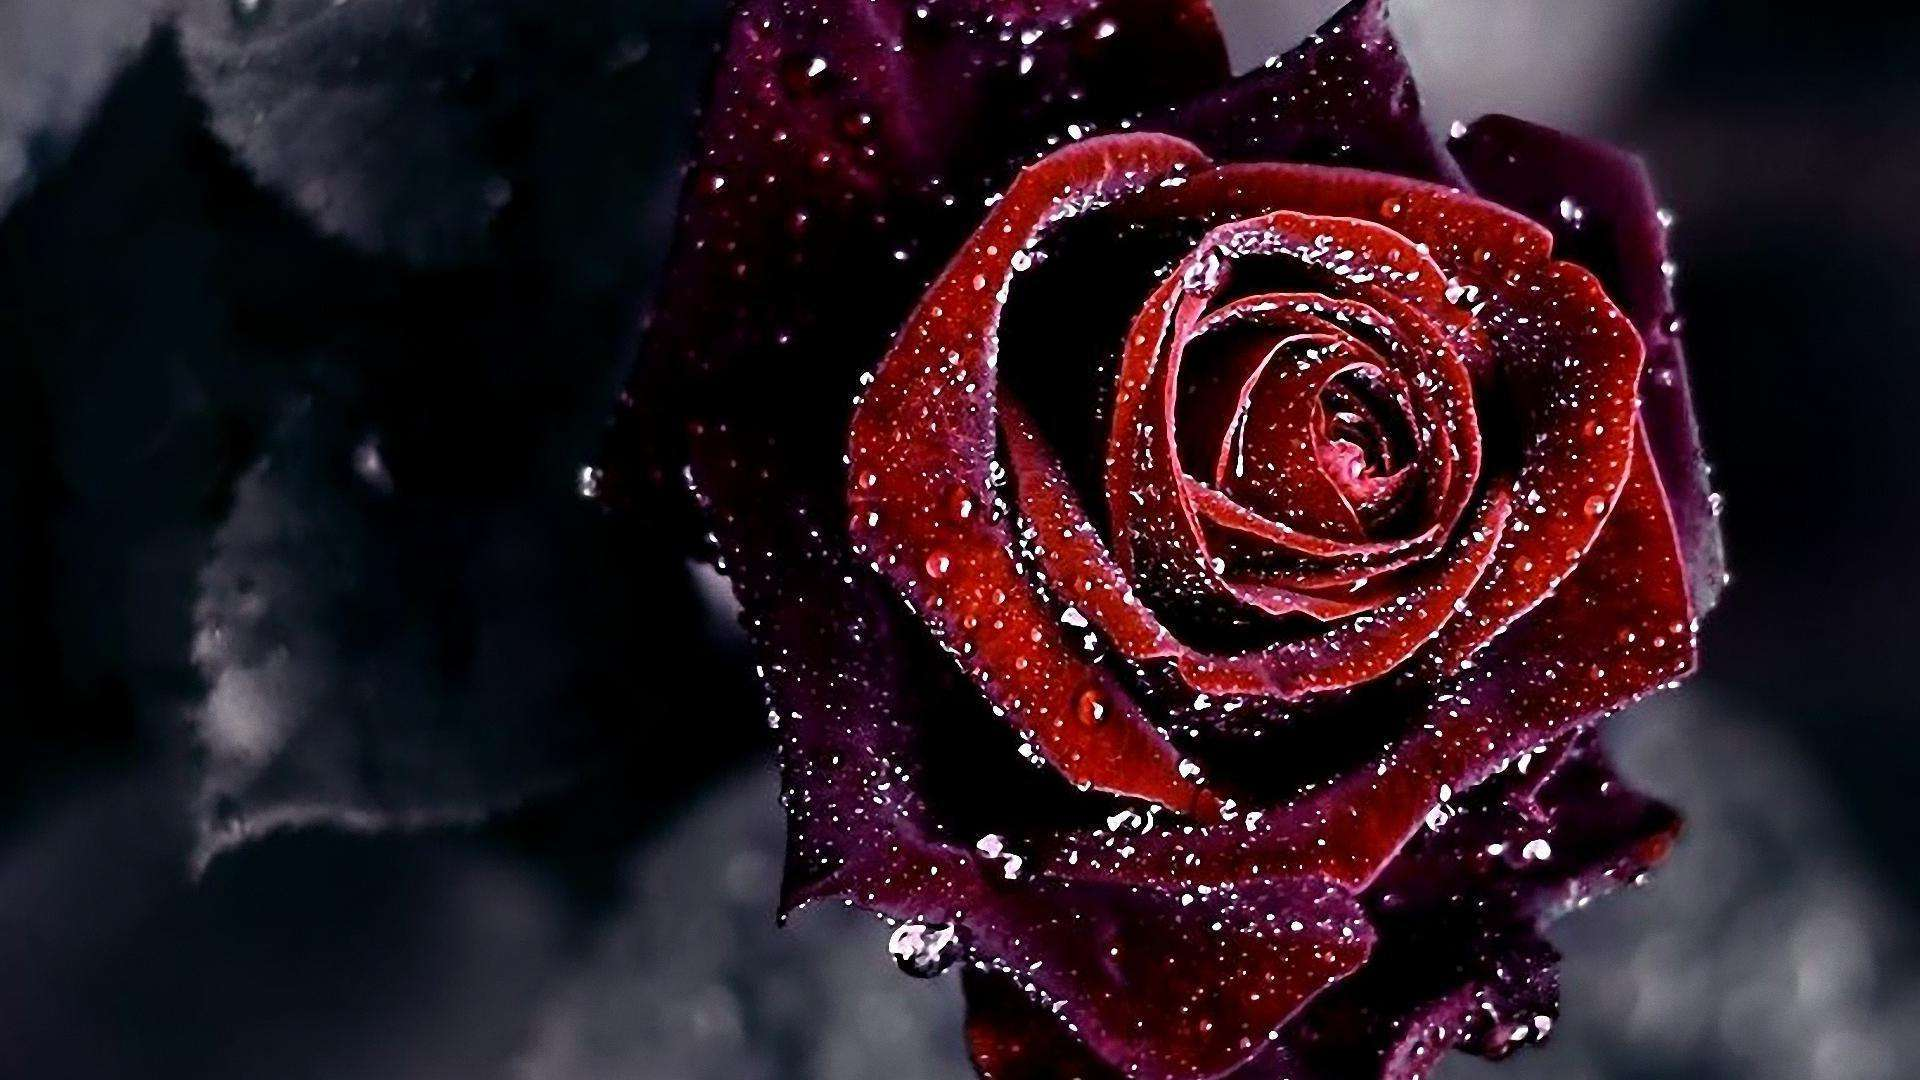 Red Roses With Black Backgrounds Posted By Sarah Simpson